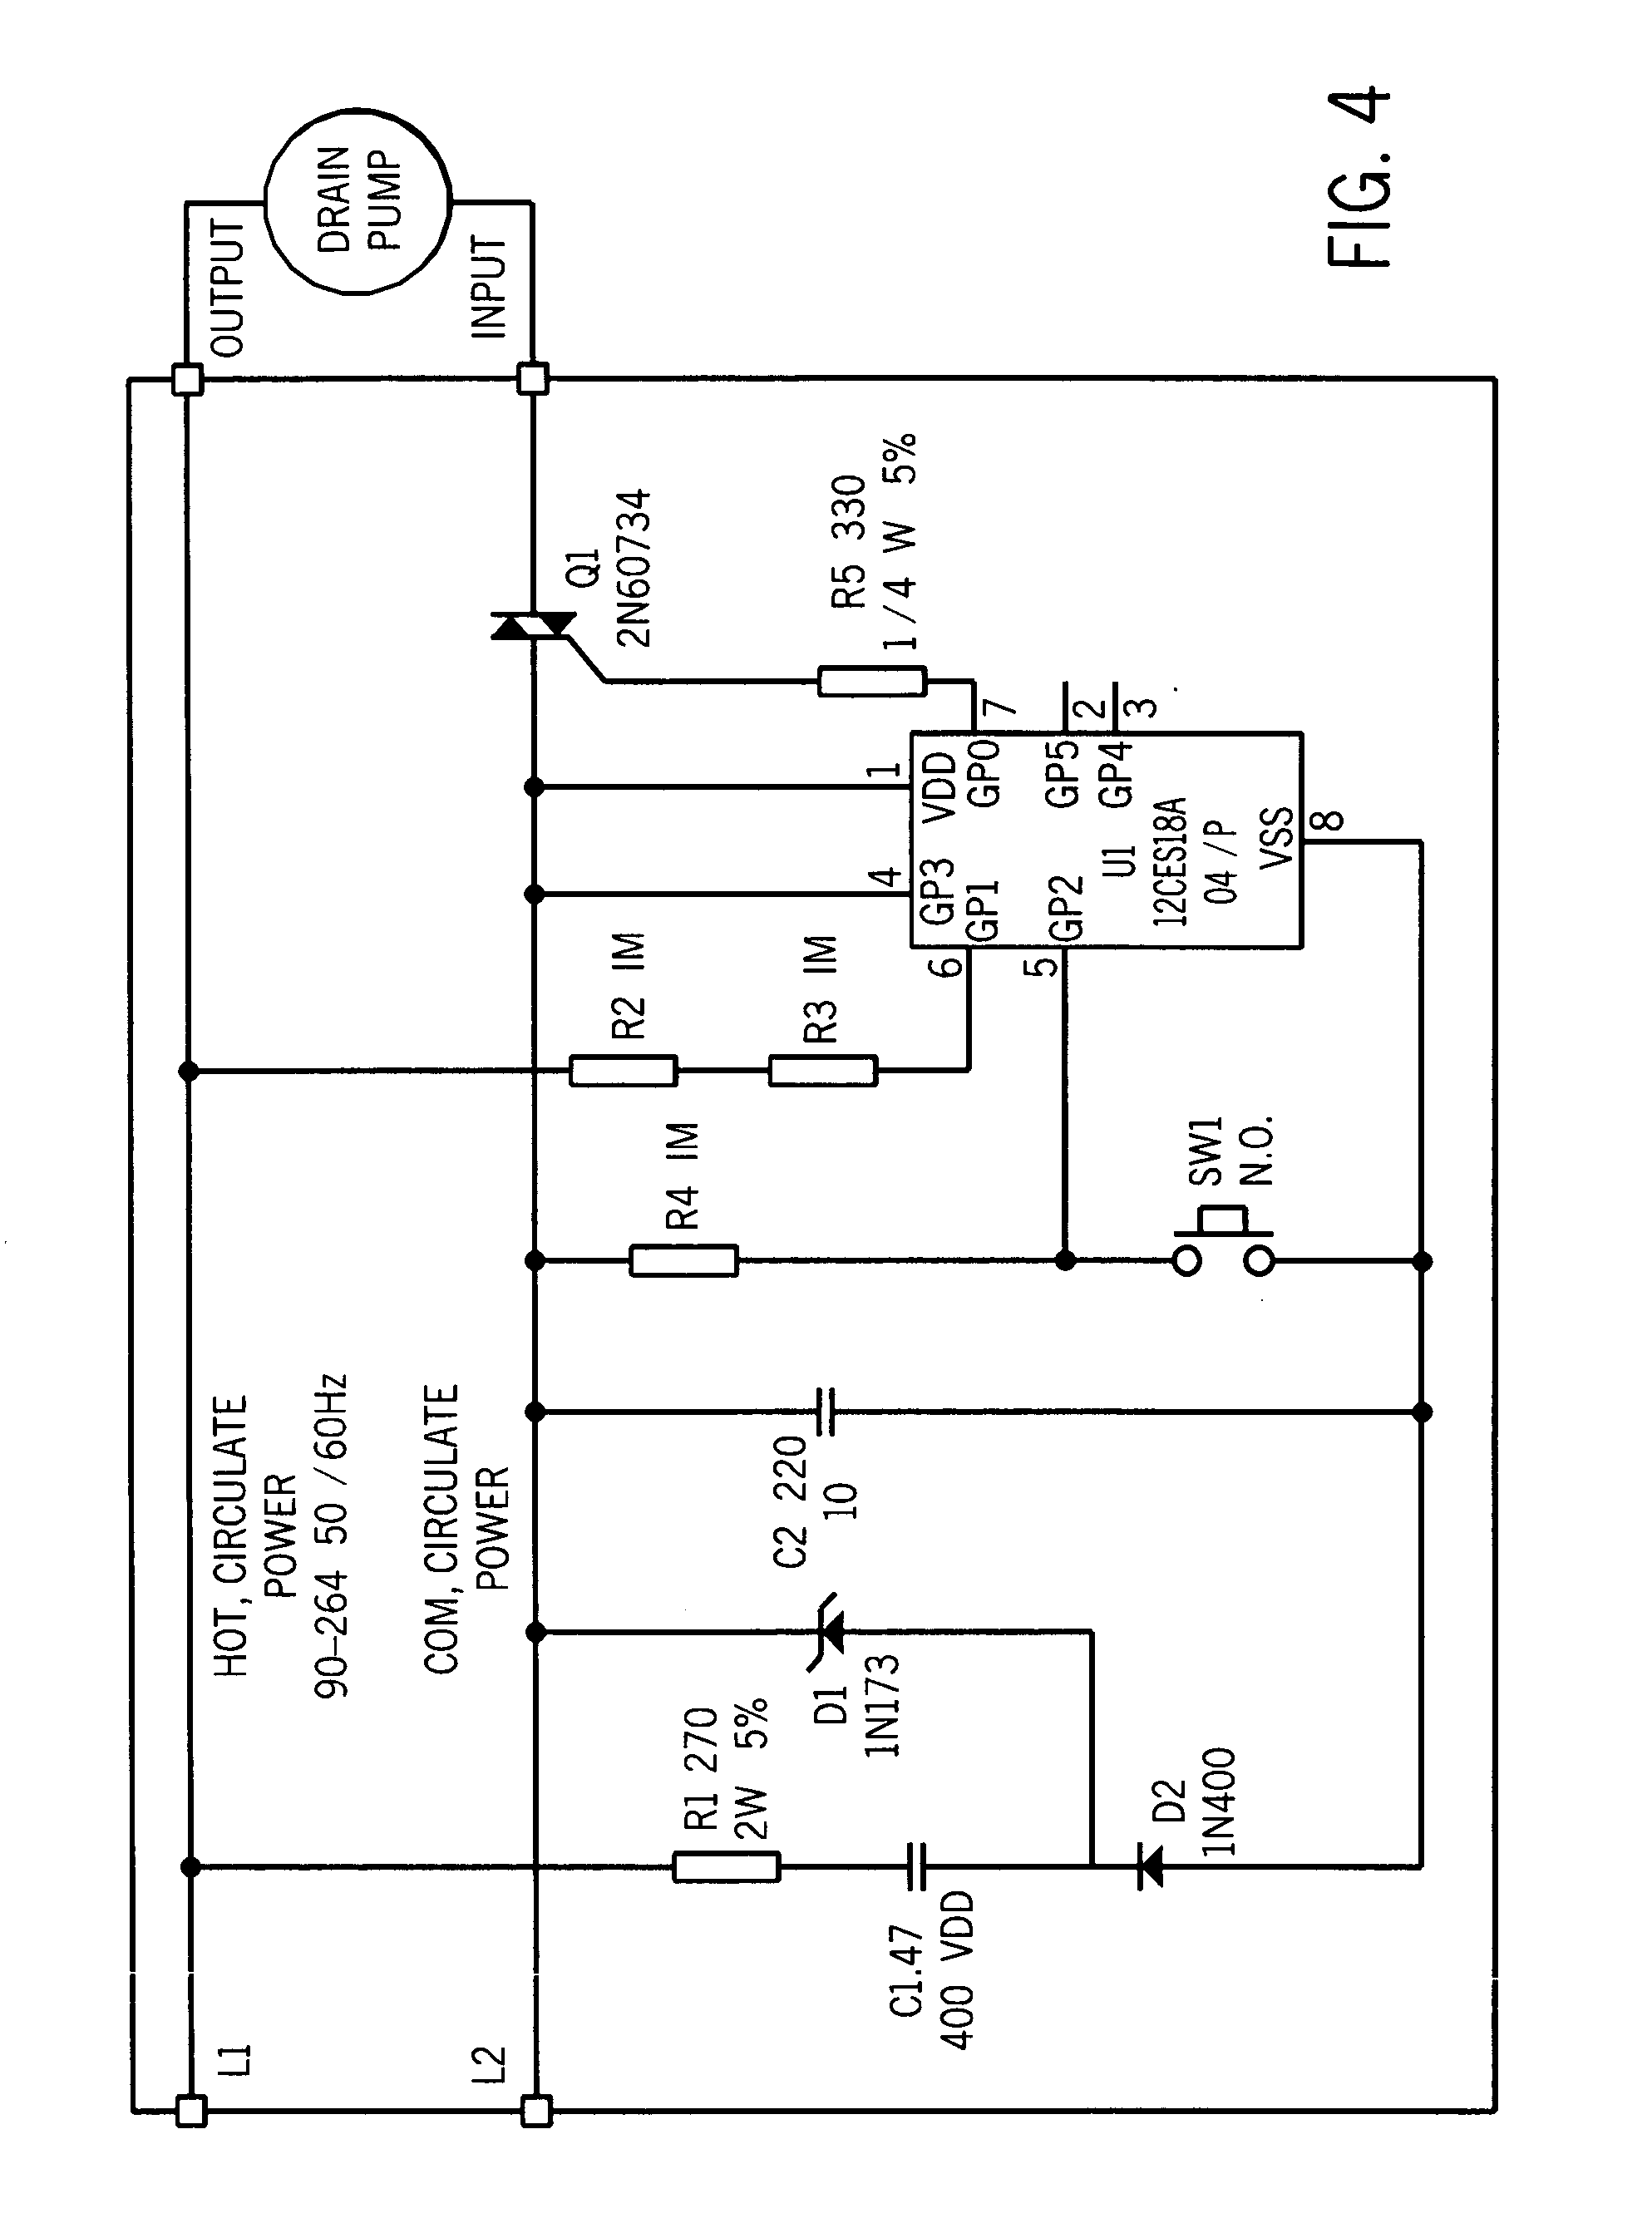 Swamp Cooler Motor Wiring Diagram Within Diagram Wiring